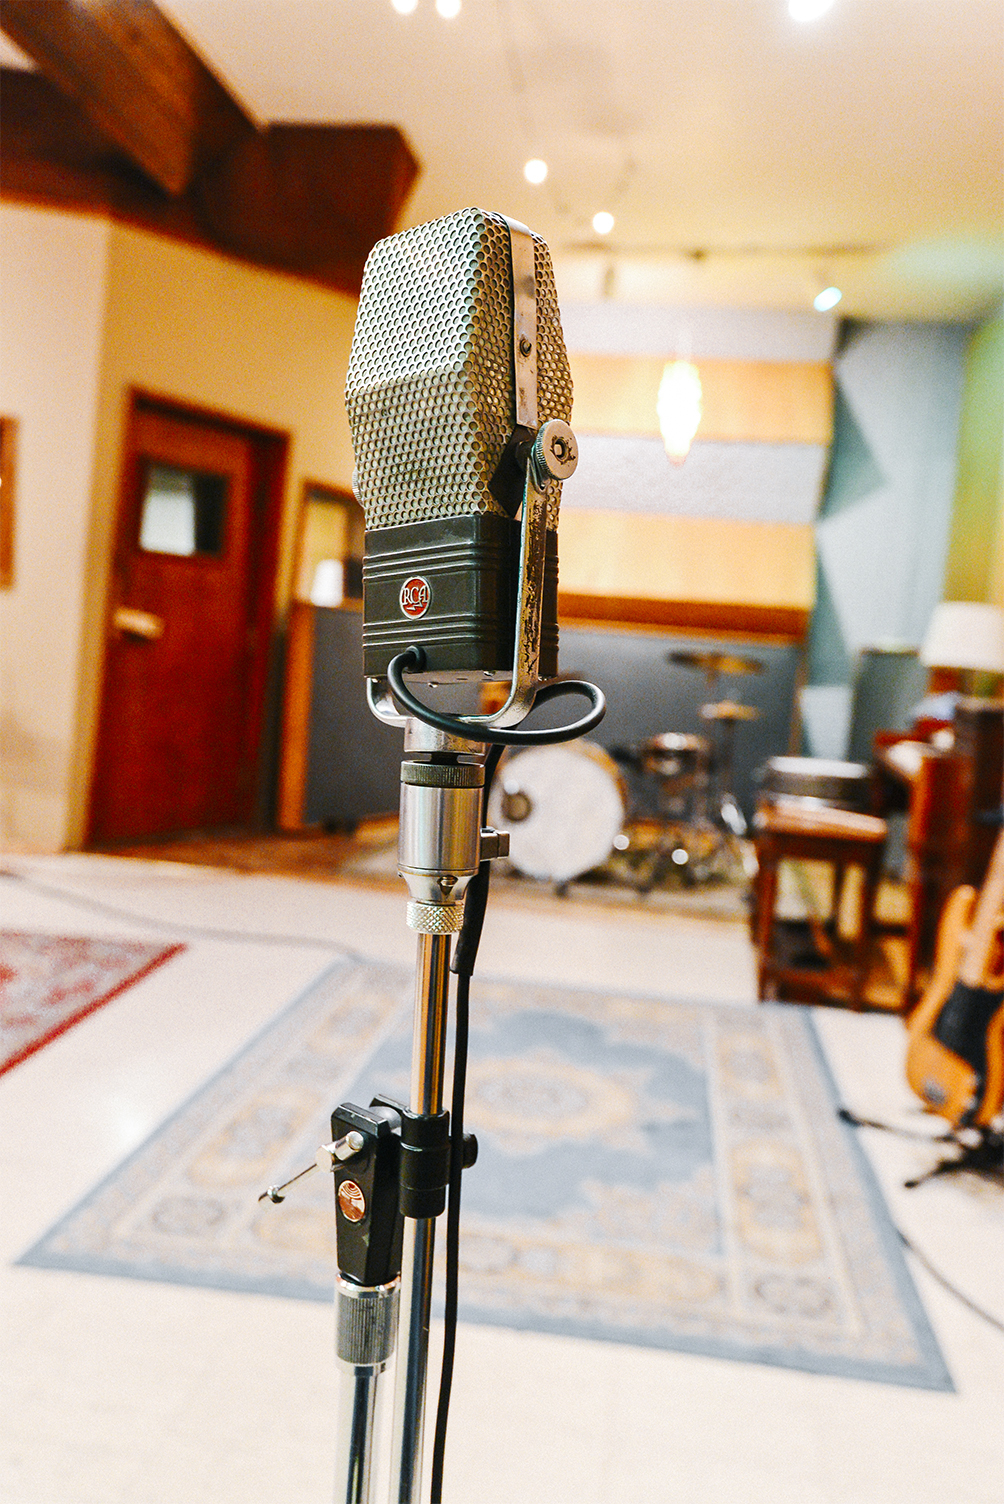 Vocal Expert - Try new things with vocal mics, outboard fx, guitar pedals, reverbs, preamps, compressors and plugins that you have never tried before to get the vocal sound you want.